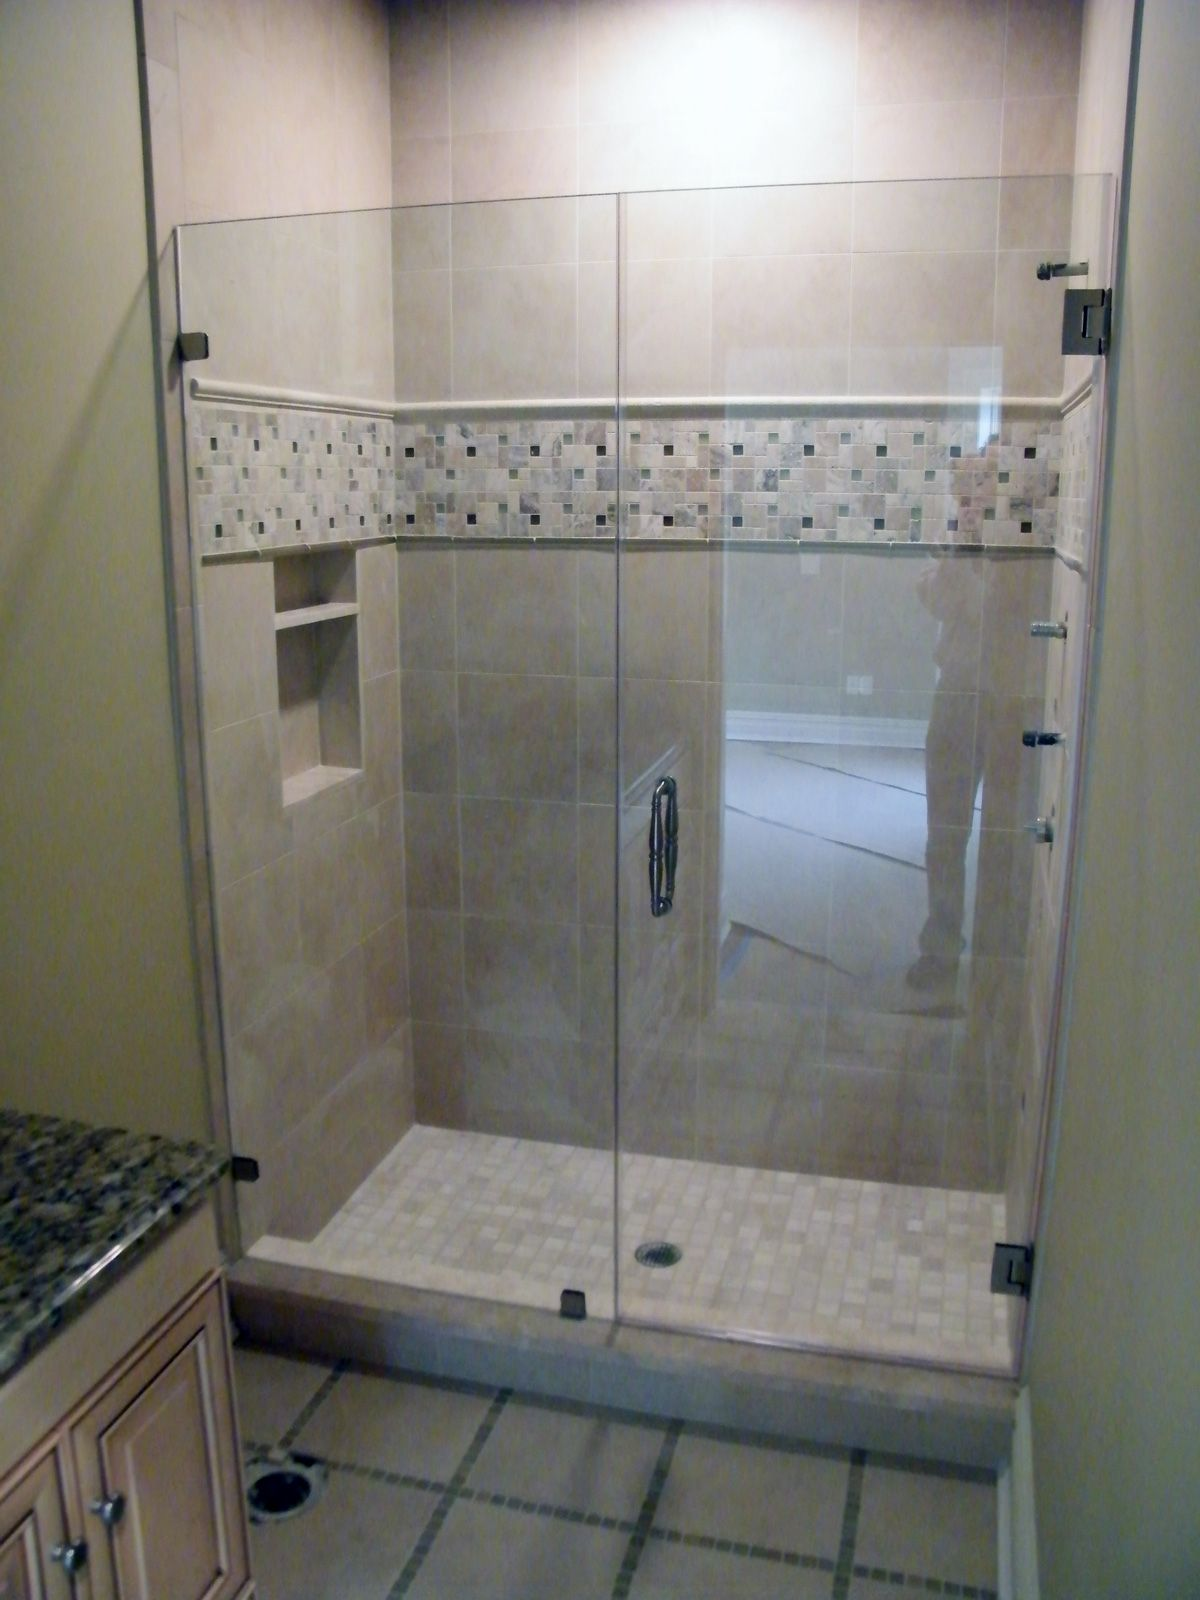 Euroview Shower Doors Httpsourceablcom Pinterest Shower - Best way to clean stand up shower